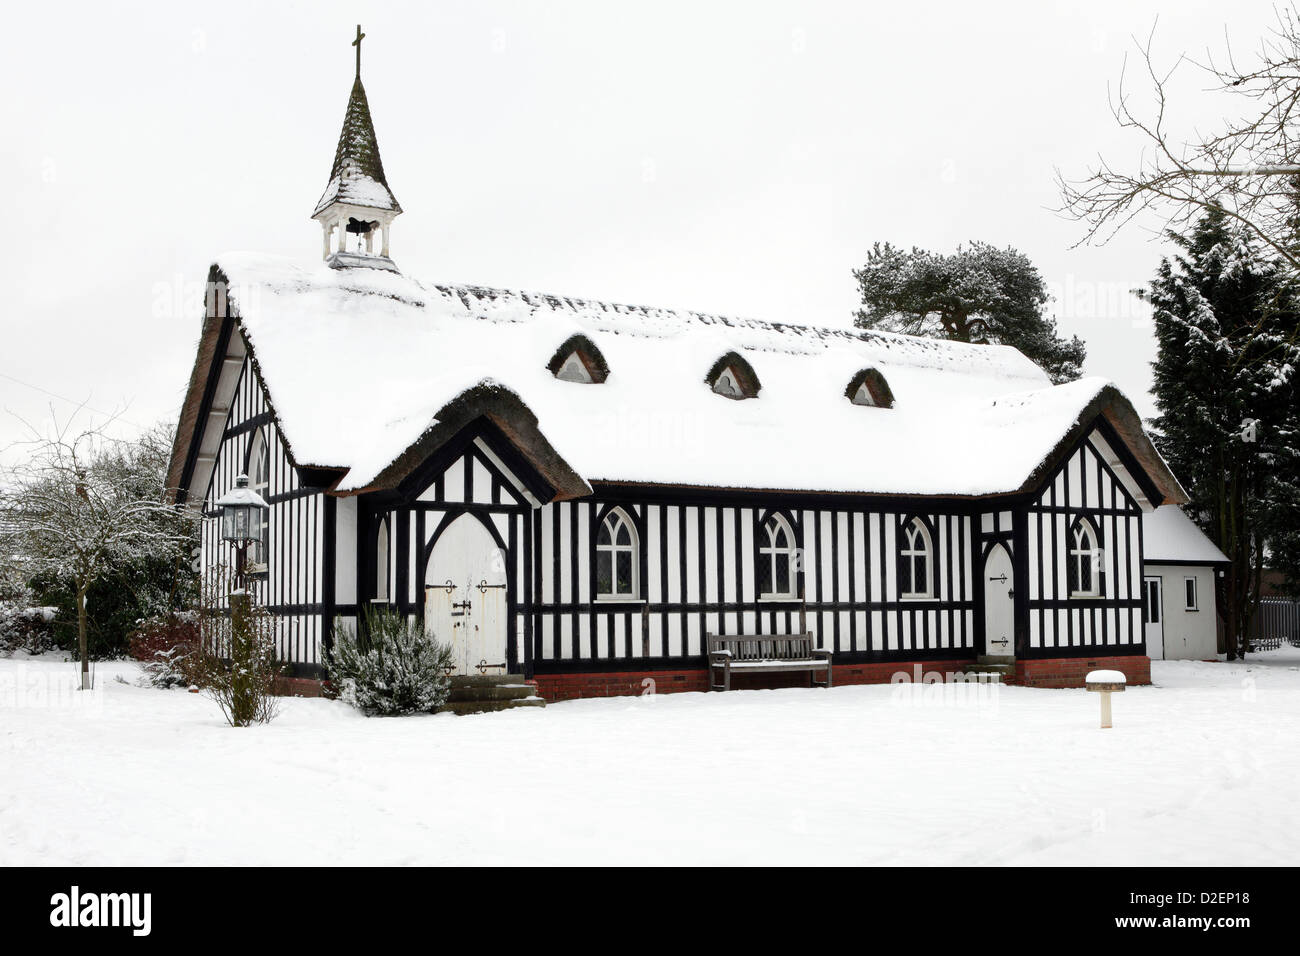 Seen here covered in snow is All Saints Church in the Shropshire village of Little Stretton,Shropshire. Stock Photo